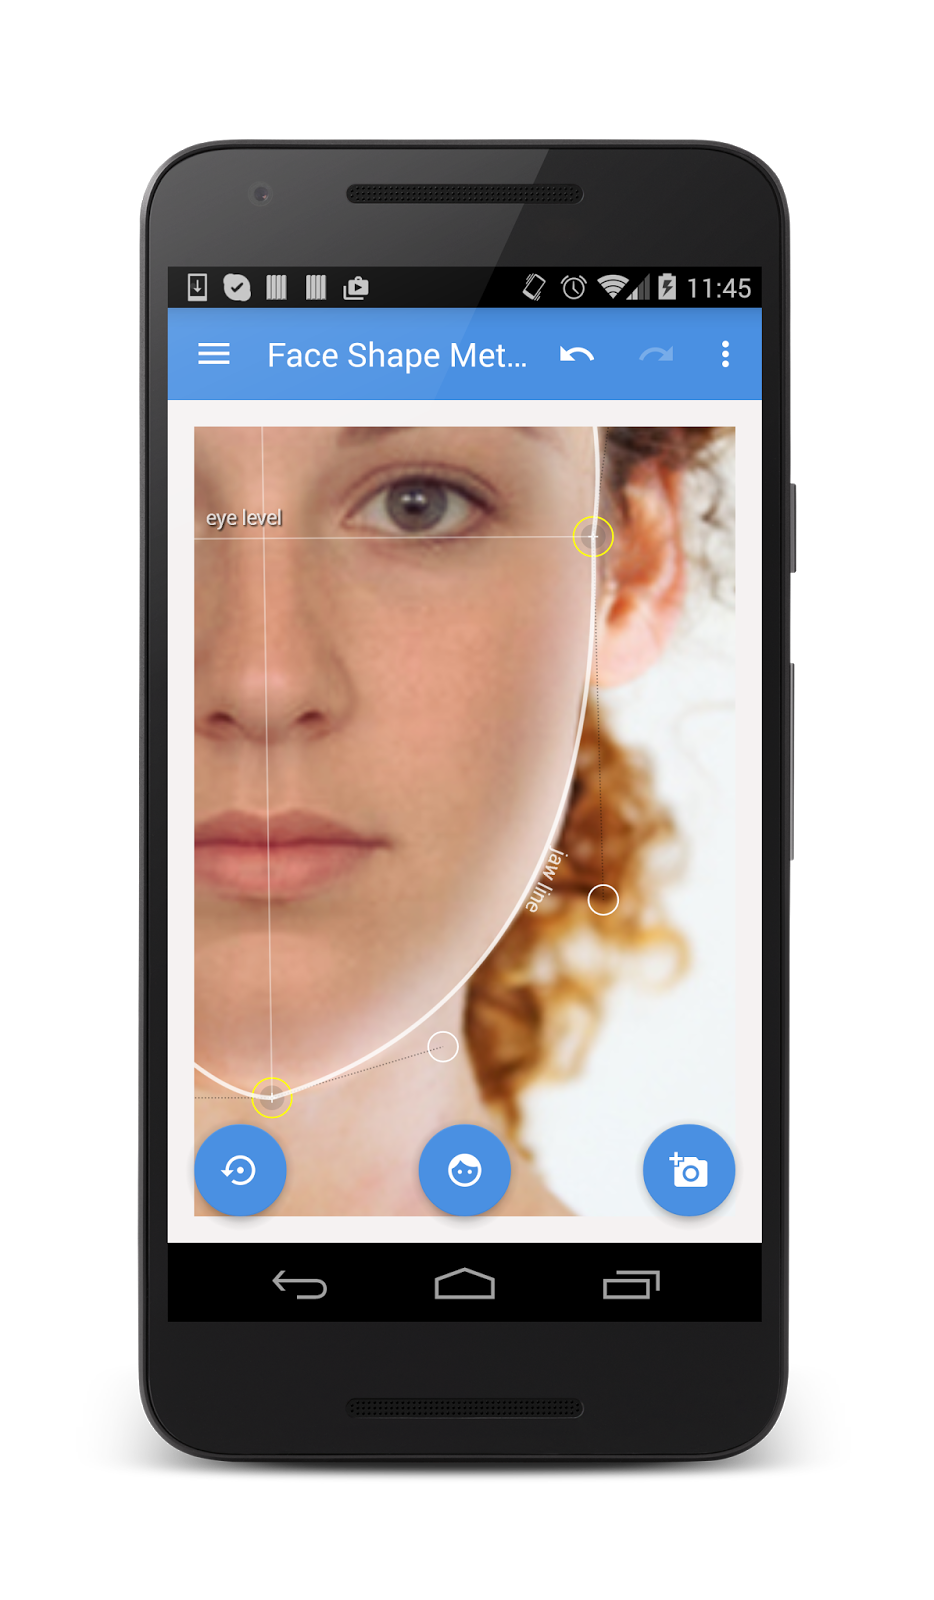 Vistech Projects What Is My Face Shape Face Shape Meter App